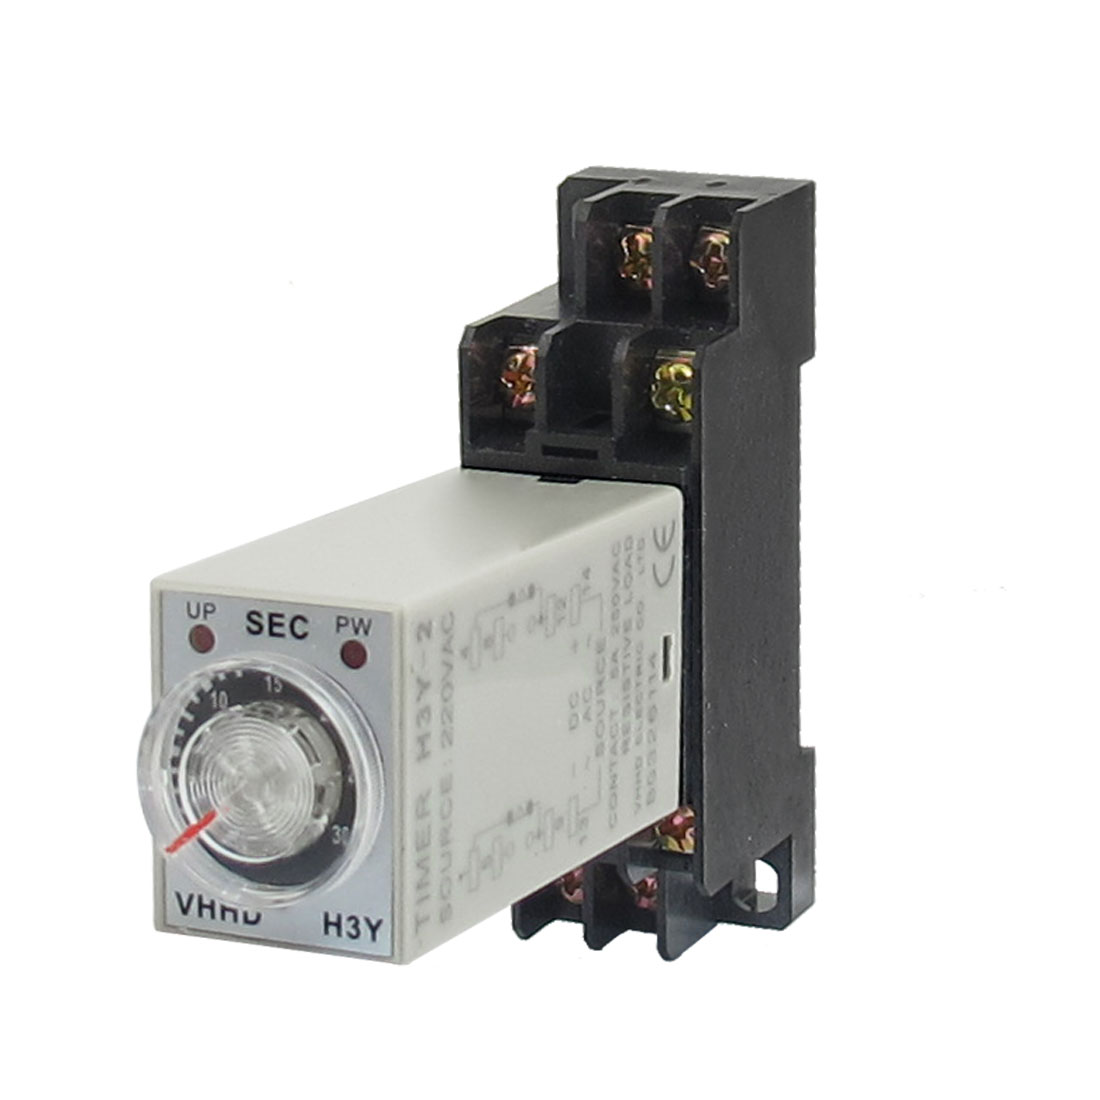 AC 220V H3Y-2 0-30S DPDT 8 Pins Power on Time Delay Relay w Socket